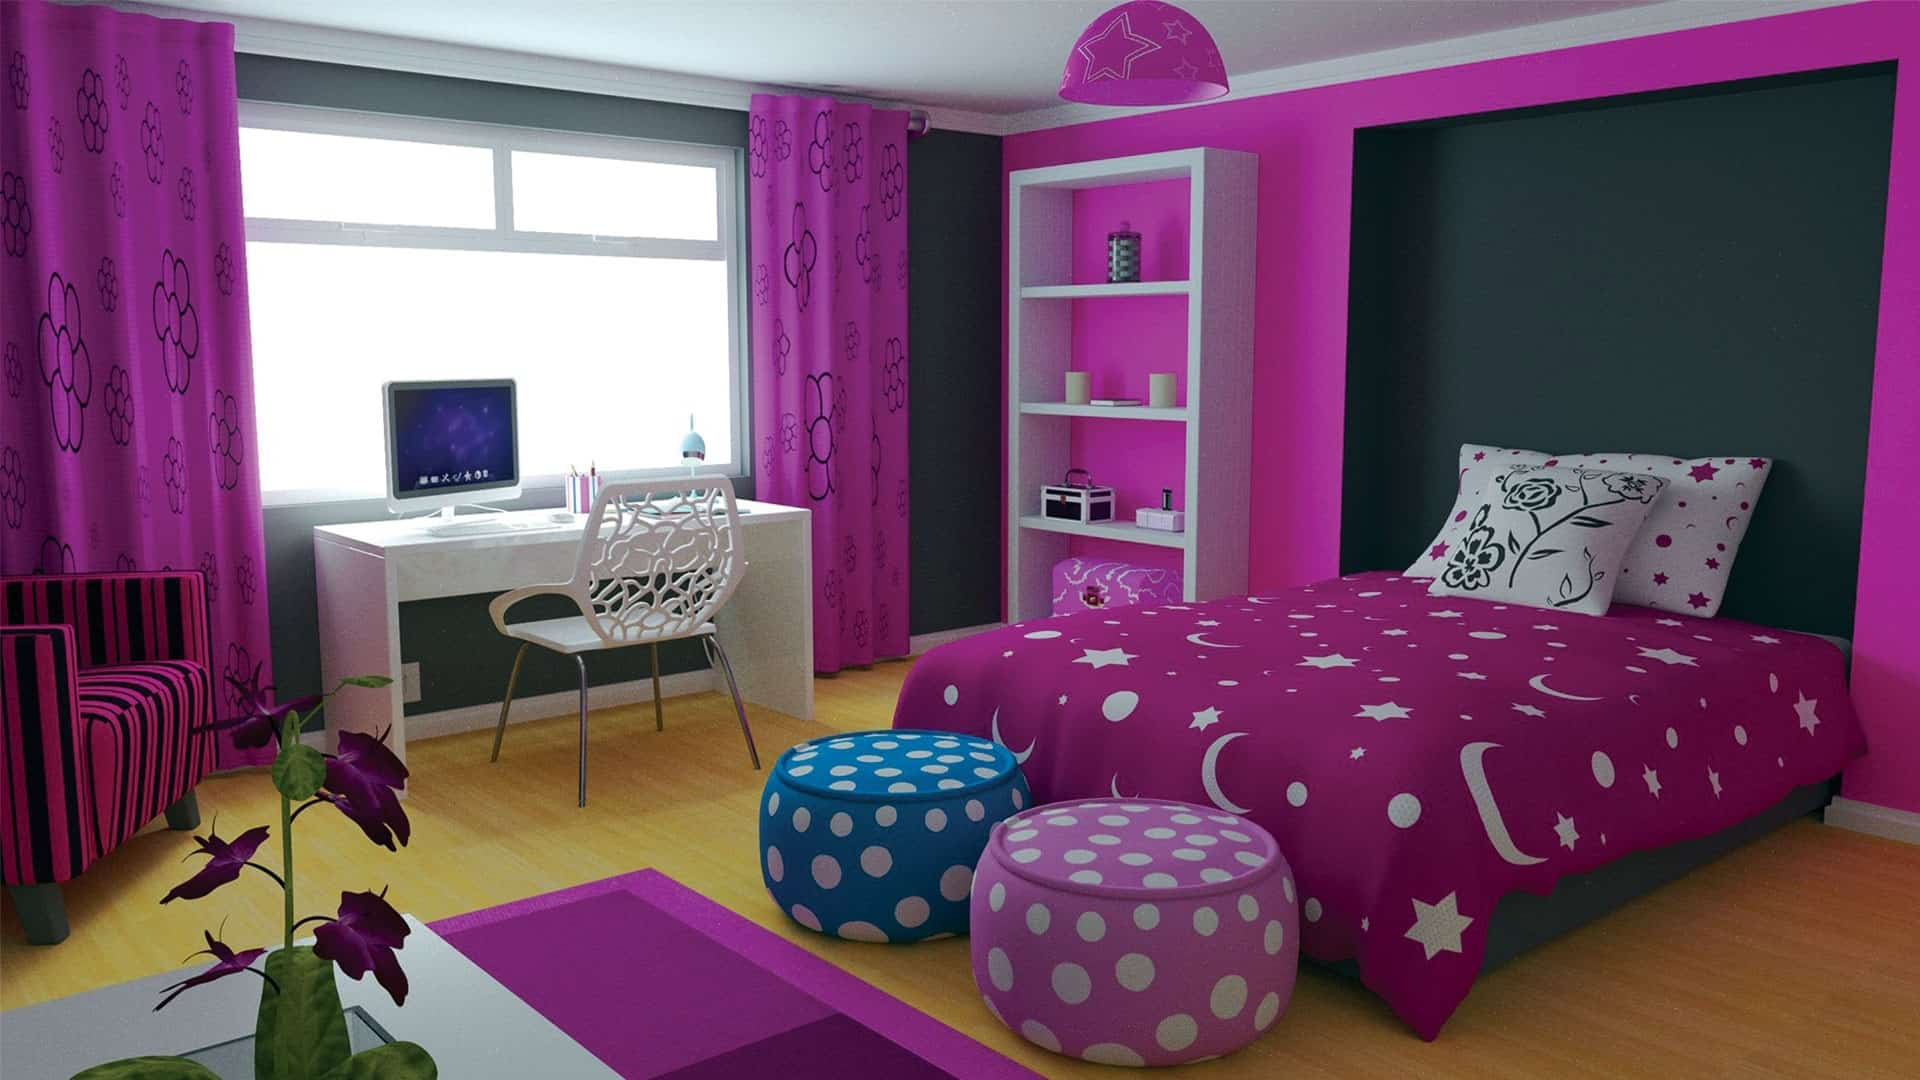 Bedroom designs for teenage girls purple - Purple Teen Room Girls Room Bedroom Ideas Teen